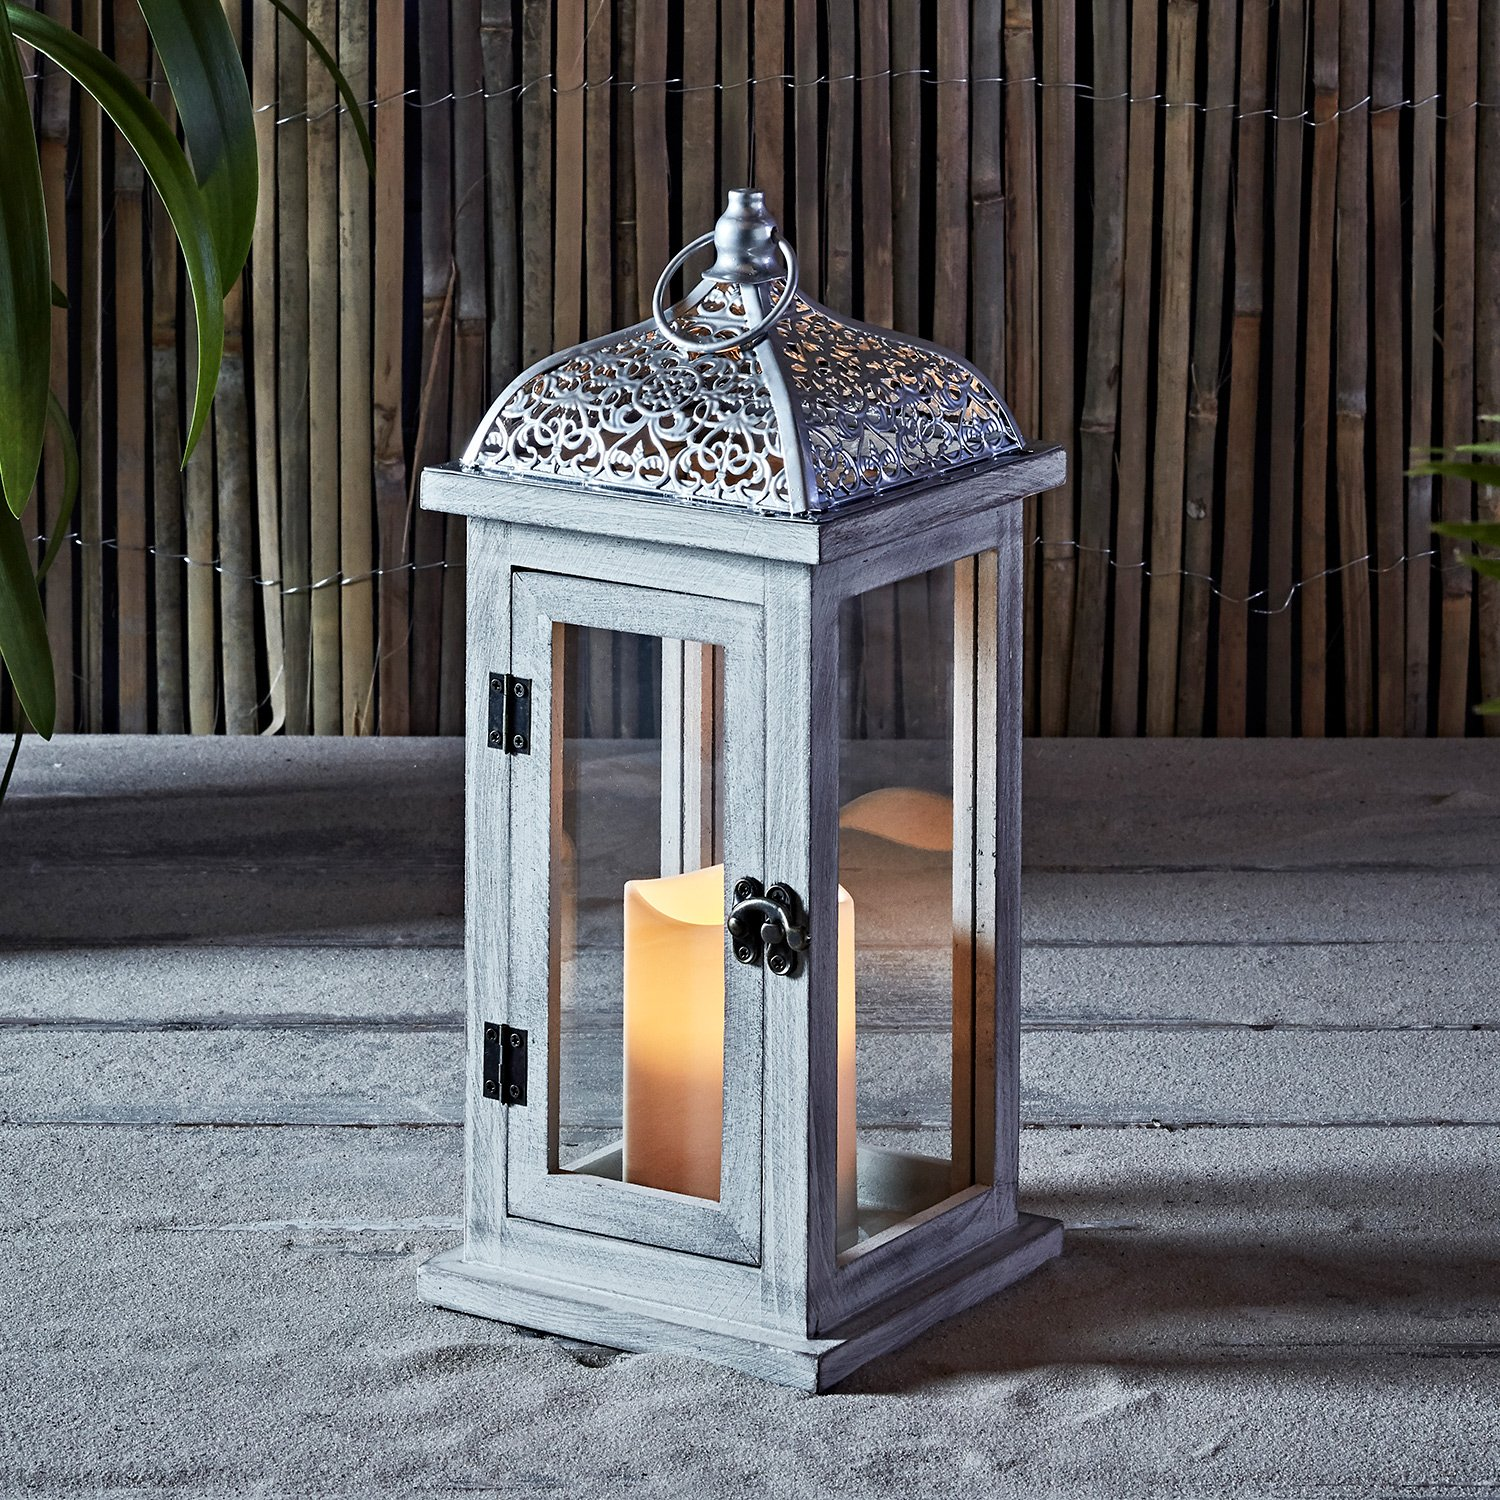 Inc Lights4fun Rustic White Wooden Battery Operated Outdoor LED Flameless Candle Lantern